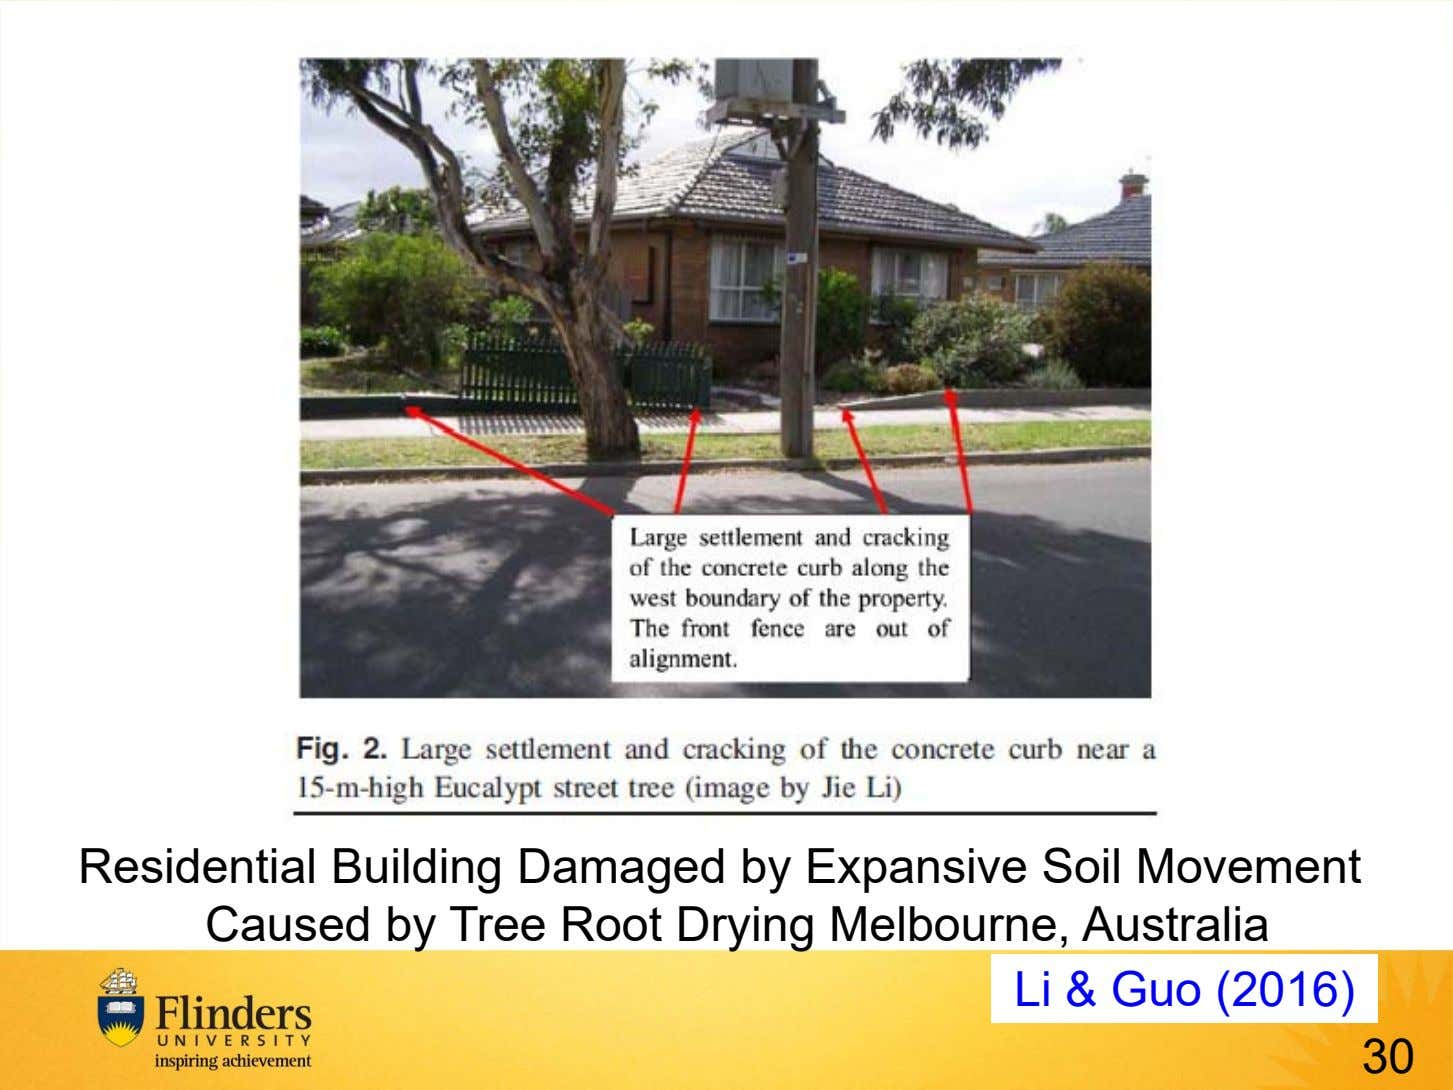 Residential Building Damaged by Expansive Soil Movement Caused by Tree Root Drying Melbourne, Australia Li